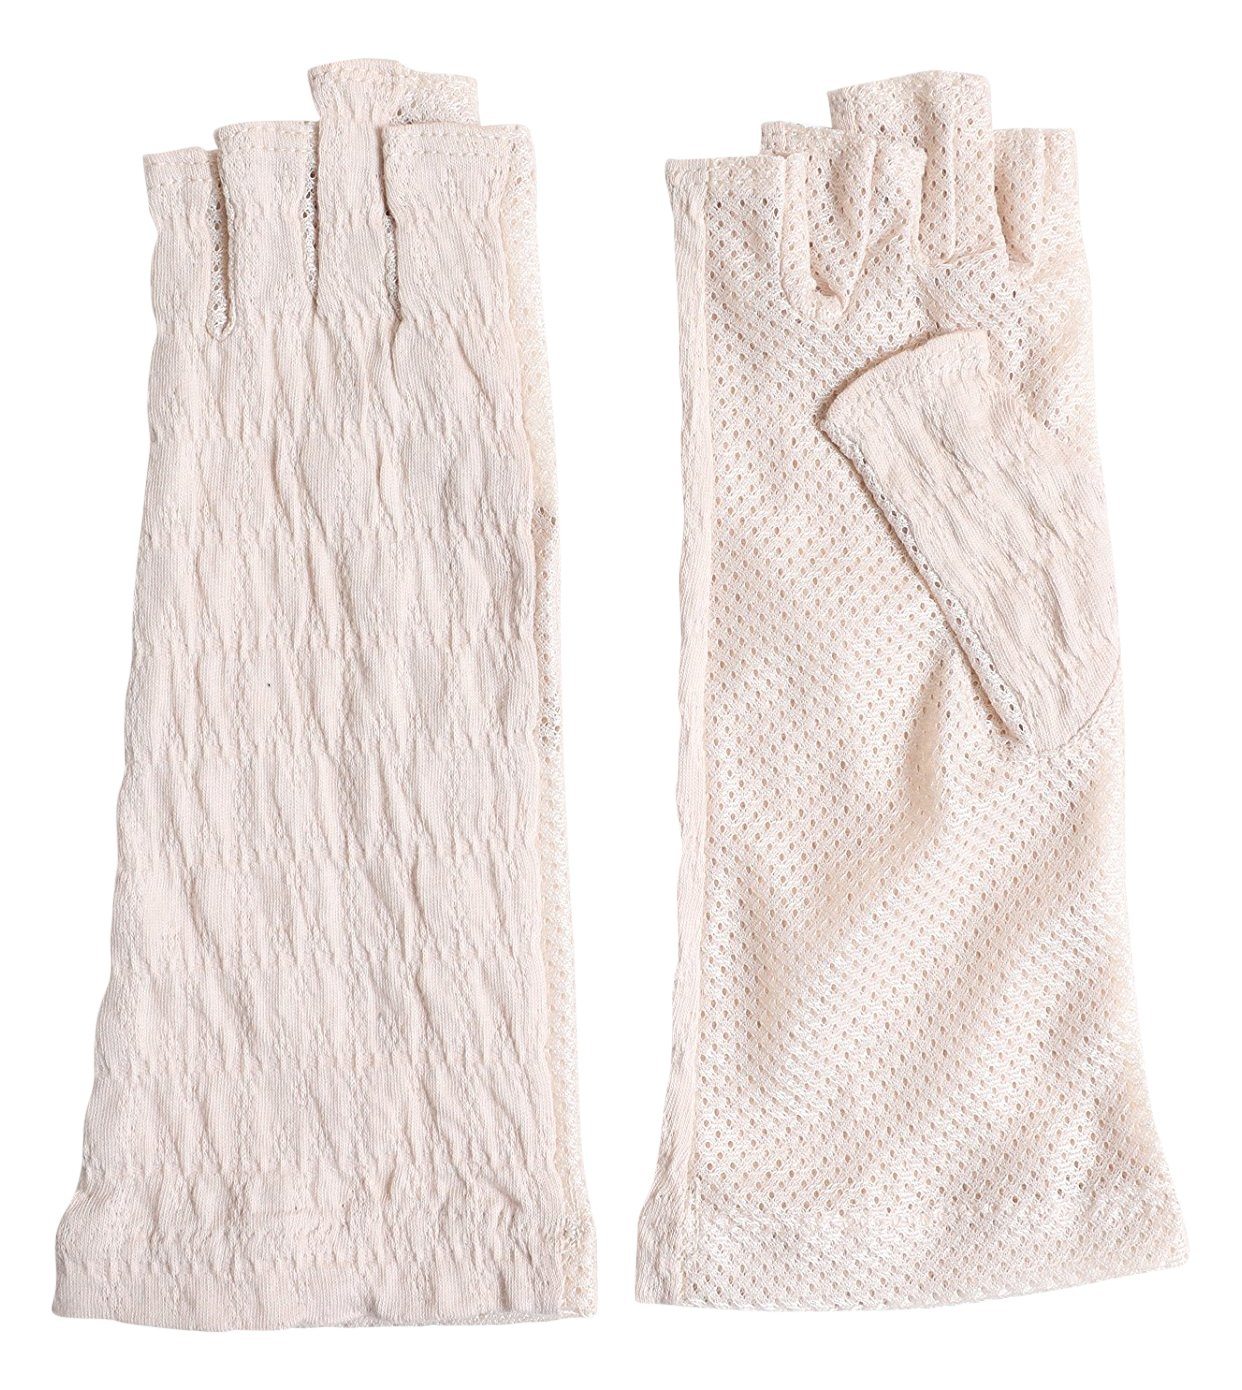 Women Sunblock UV Protection Mesh Outdoor Driving Antimicrobial and deodorant-finished Crinkle chiffon fabric Youryu Half Finger Fingerless Gloves Summer Japan Import by GlovesDEPO Beige